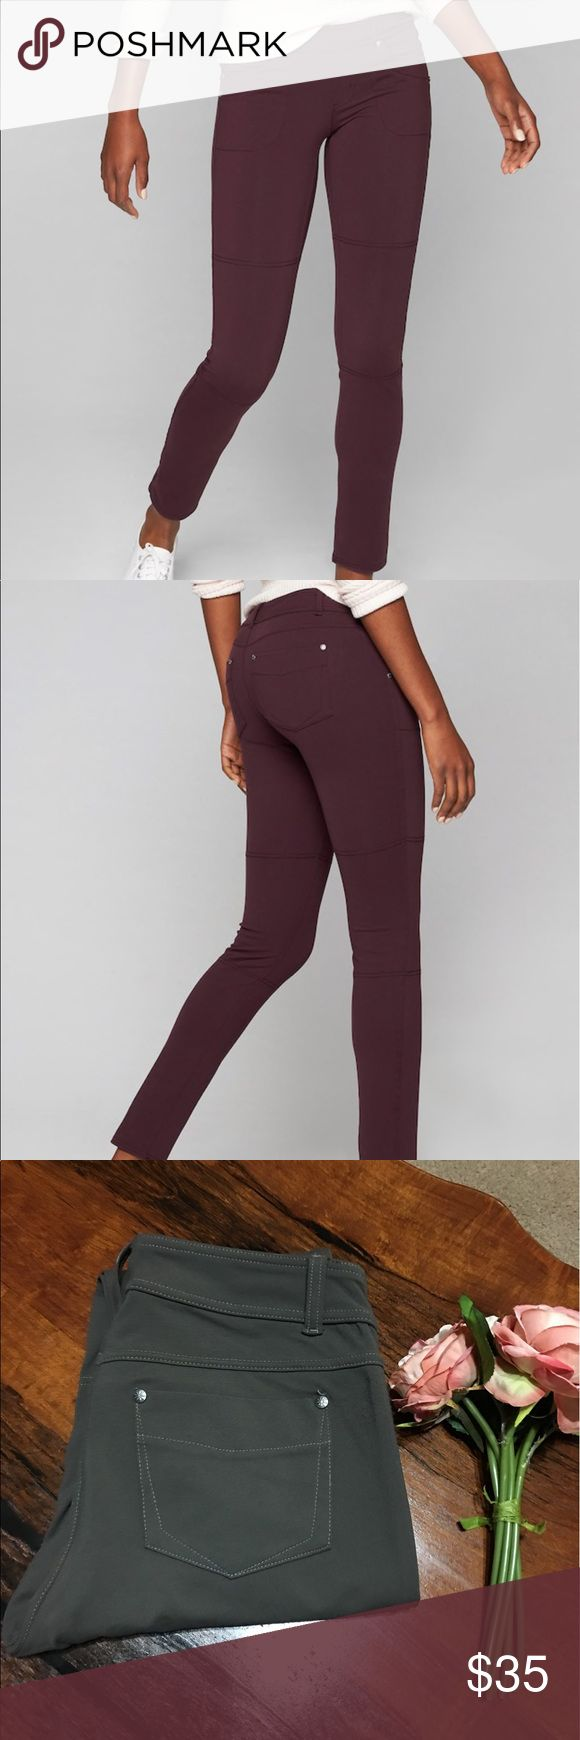 ✨ATHLETA JEGGINS✨ In GOOD CONDITION NO STAINS NO HOLES Faux fly, belt loops, jean-inspired stitching 4 Pockets 2 front hand, 2 back patch Nylon/Spandex PILAYO Our exclusive, signature fabric that's our go-to for every workout BLACK LYCRA Black color has black Lycra® spandex for no-shine effect WICKING Pulls sweat away from the body so it can evaporate faster BREATHABLE Sweat can travel through the fabric so it can evaporate on the surface IT FEELS Super soft, stretchy, lightweight and…